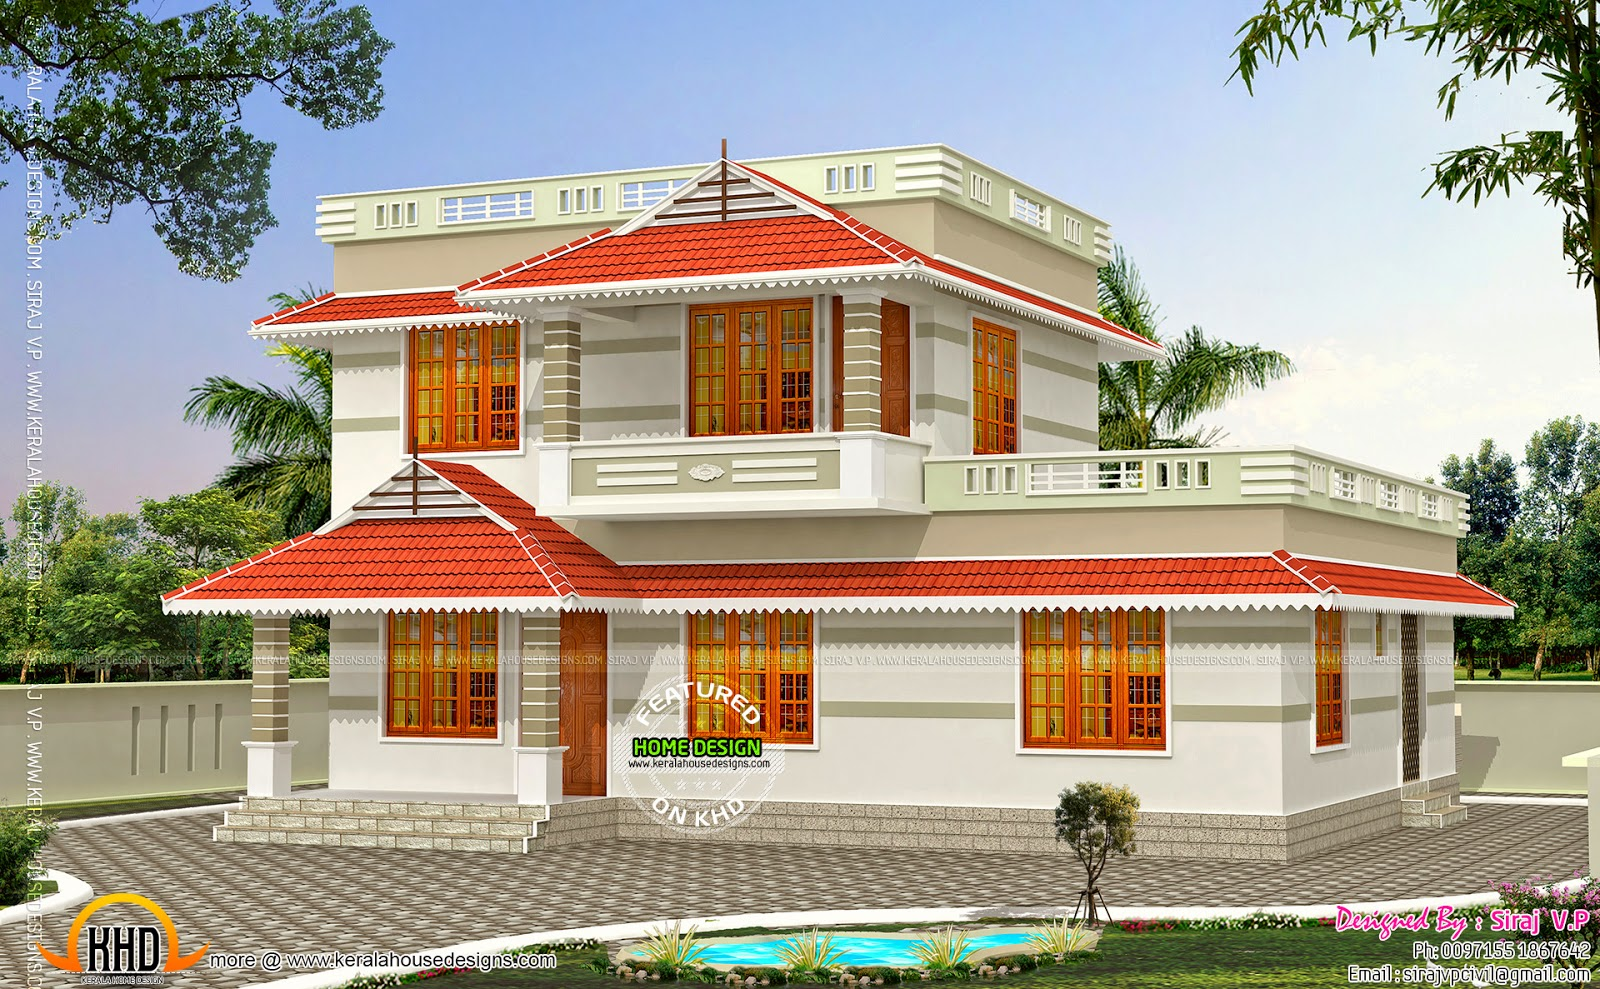 Kerala house designs low cost joy studio design gallery for Kerala home designs low cost